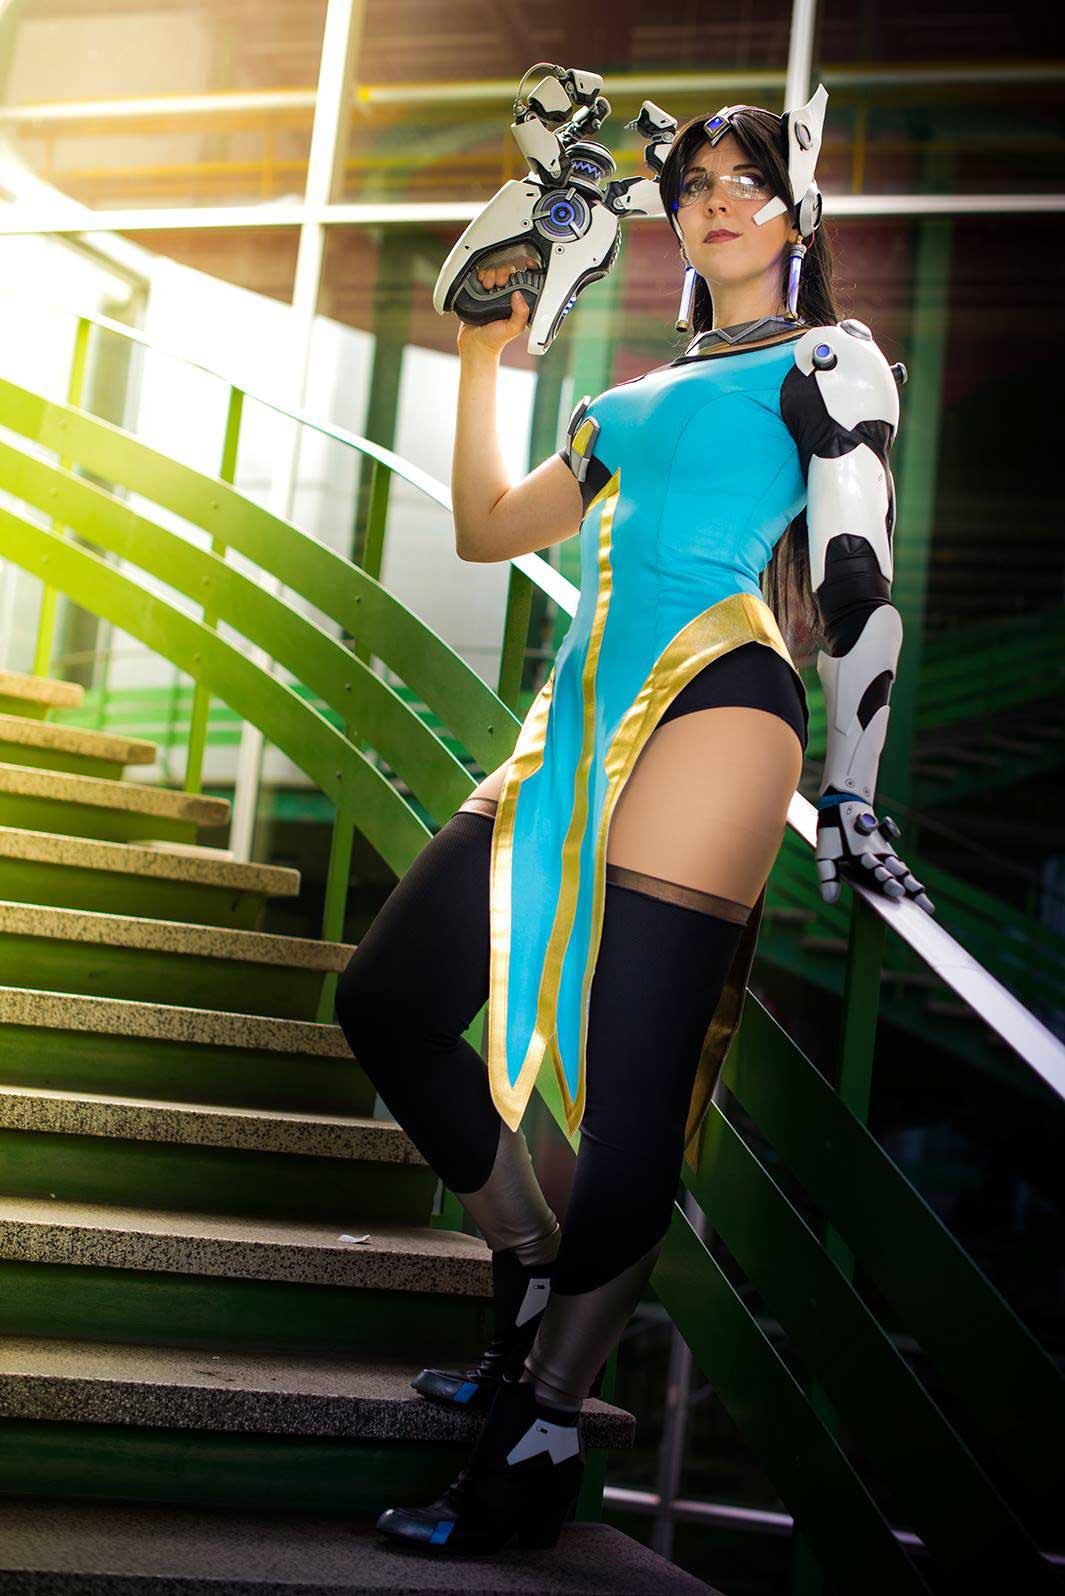 Symmetra Overwatch Hot Photoshoot